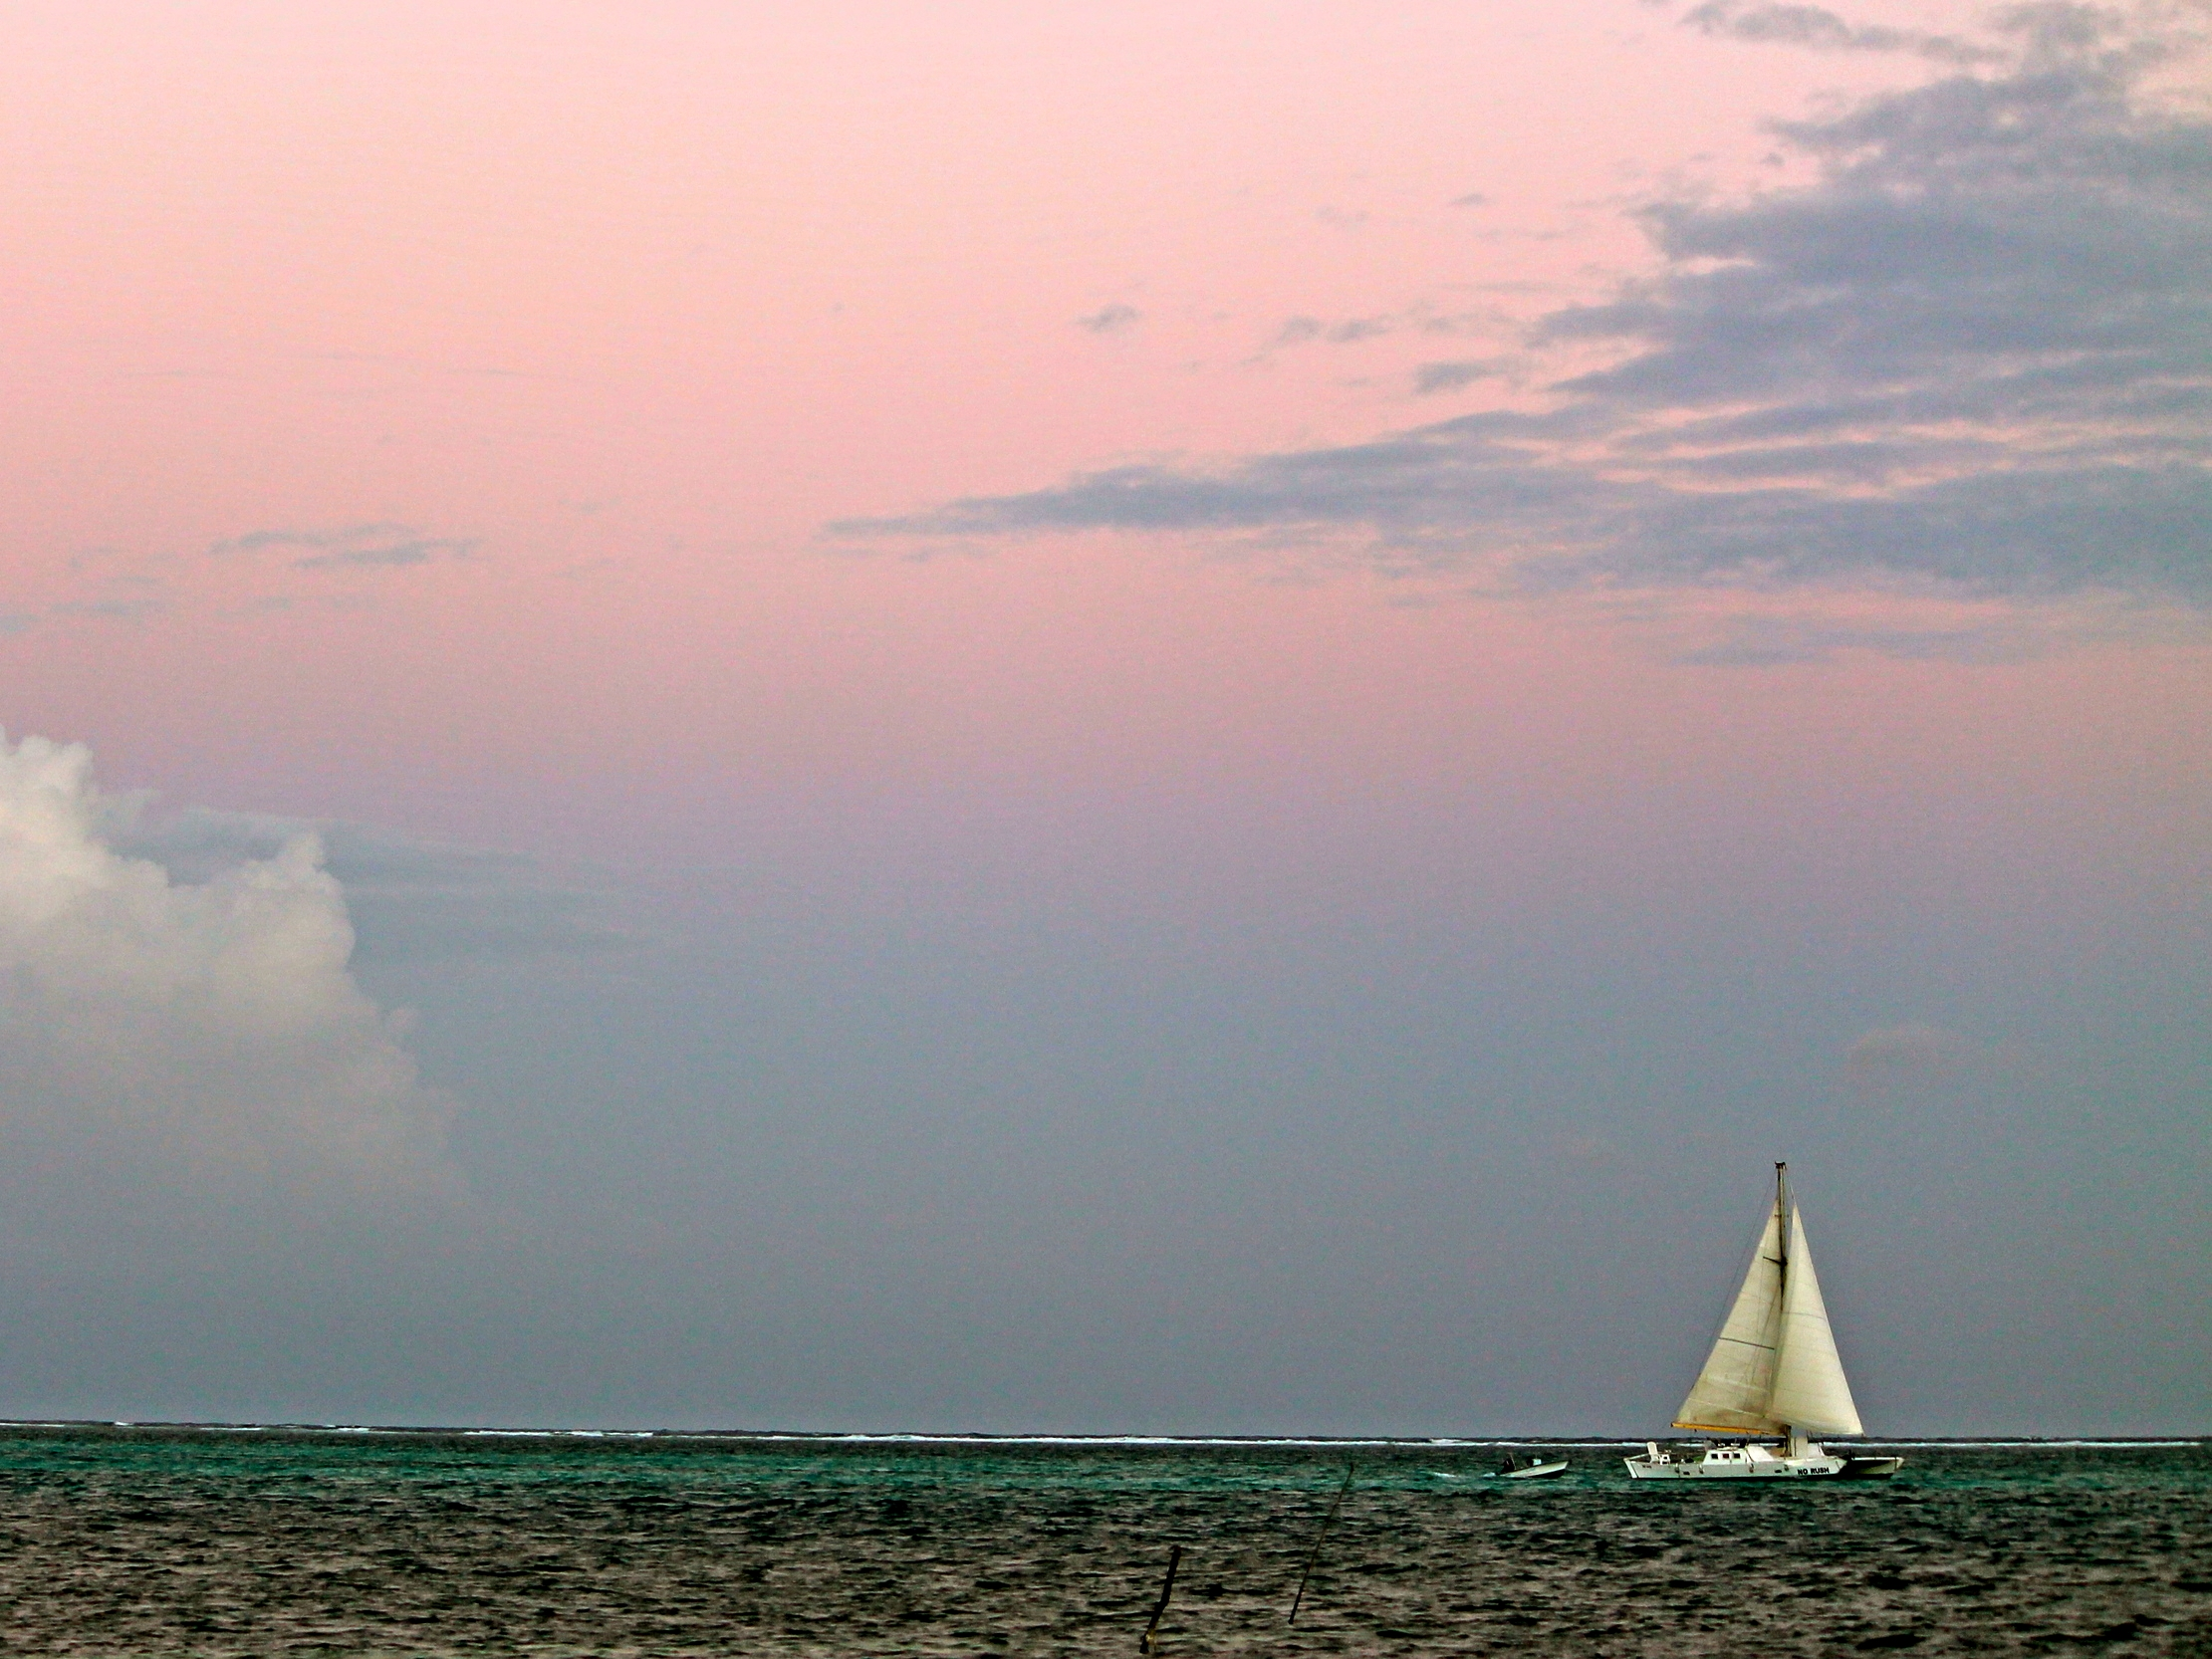 Charter a sunset sail and get away from it all in Belize